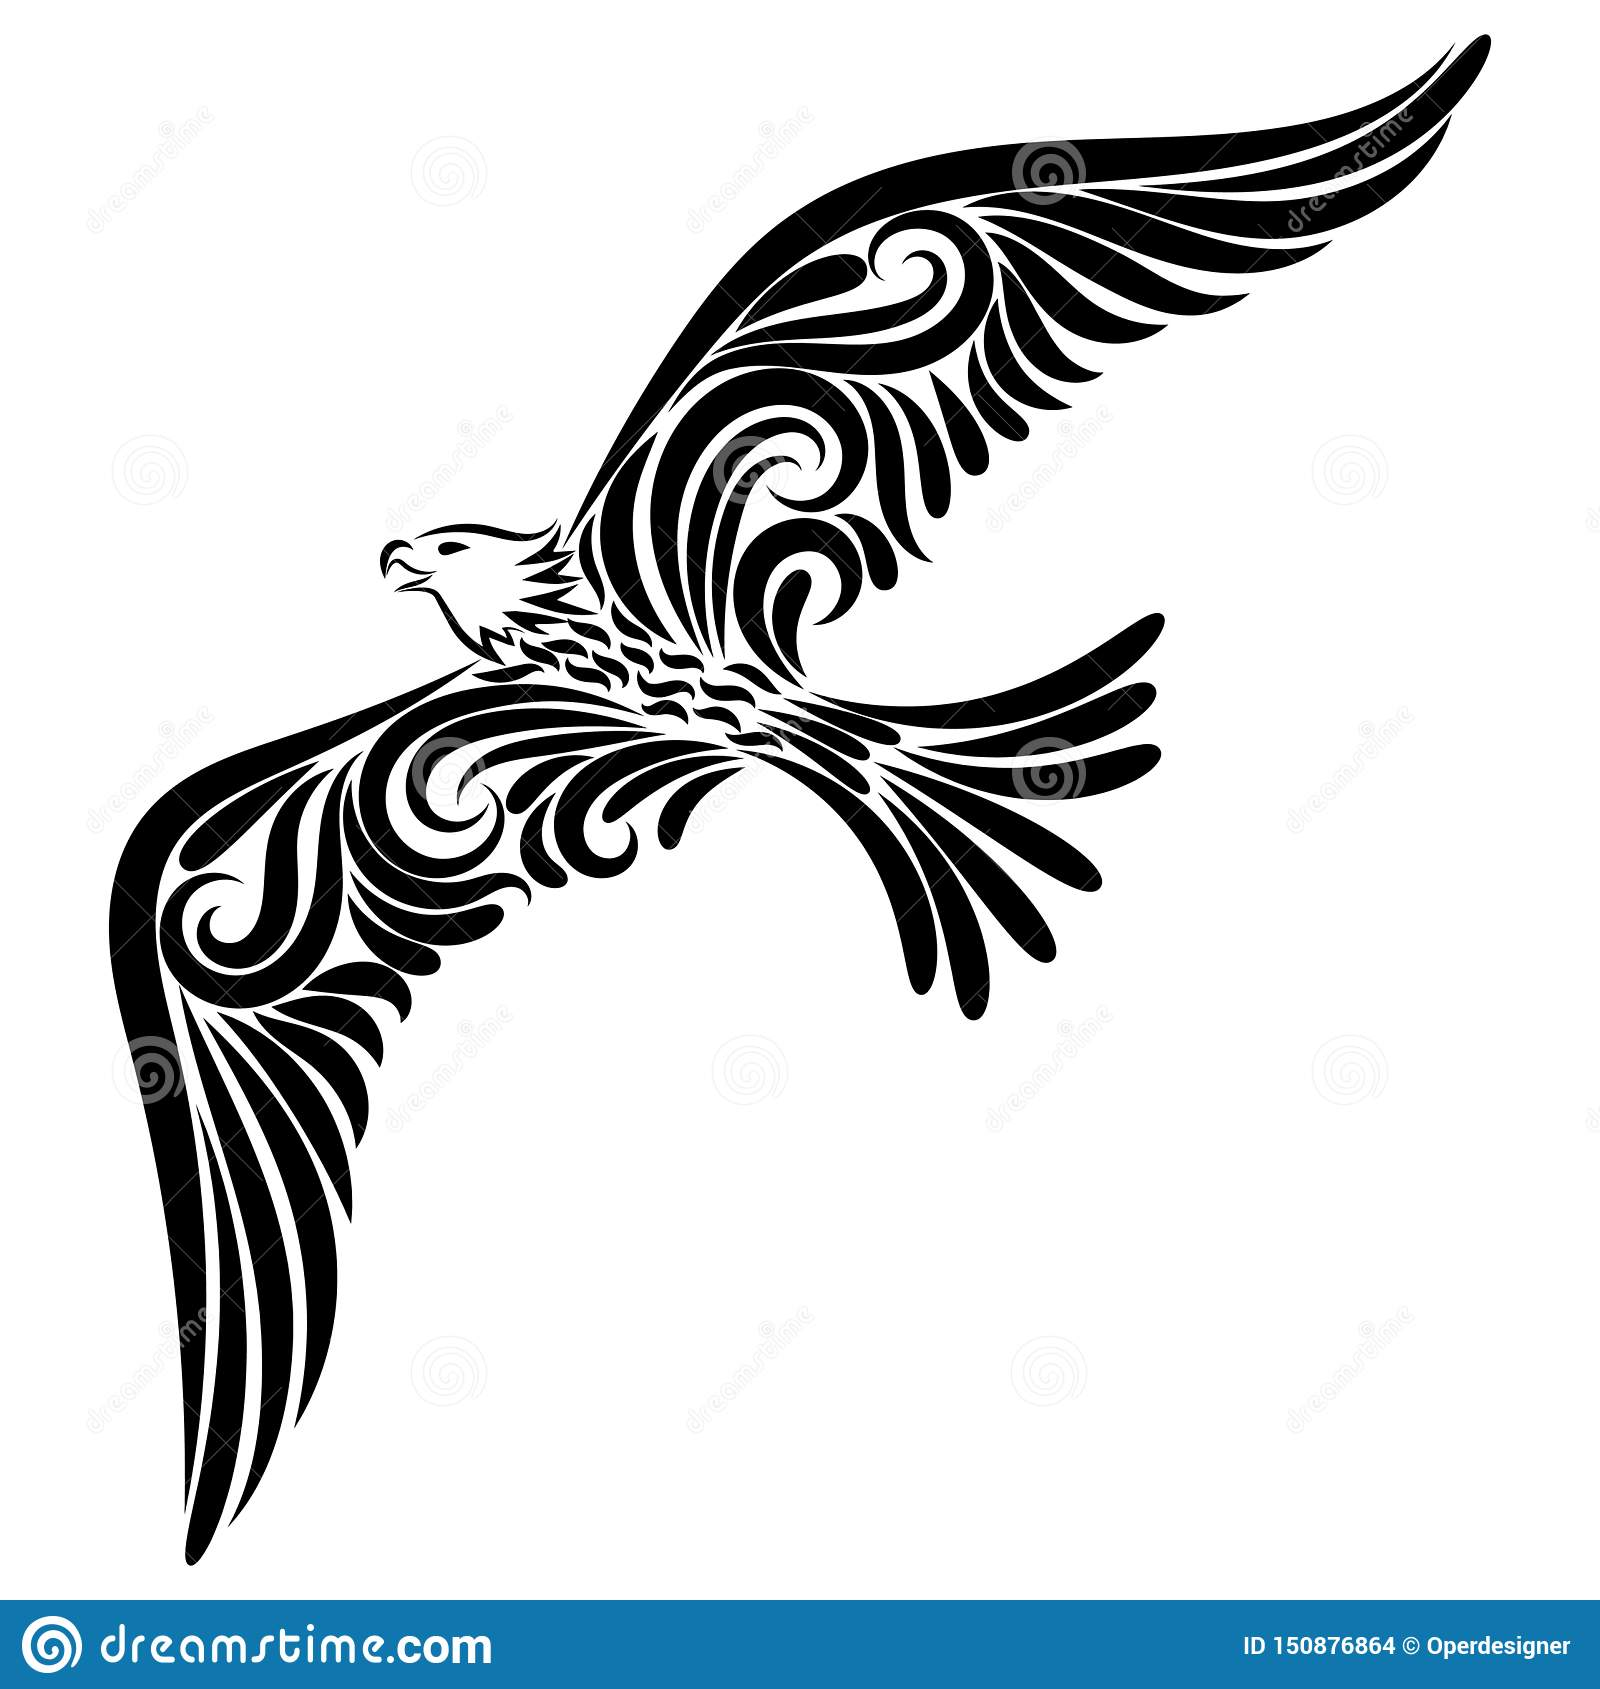 Eagle From The Black Line Ornament Stock Illustration